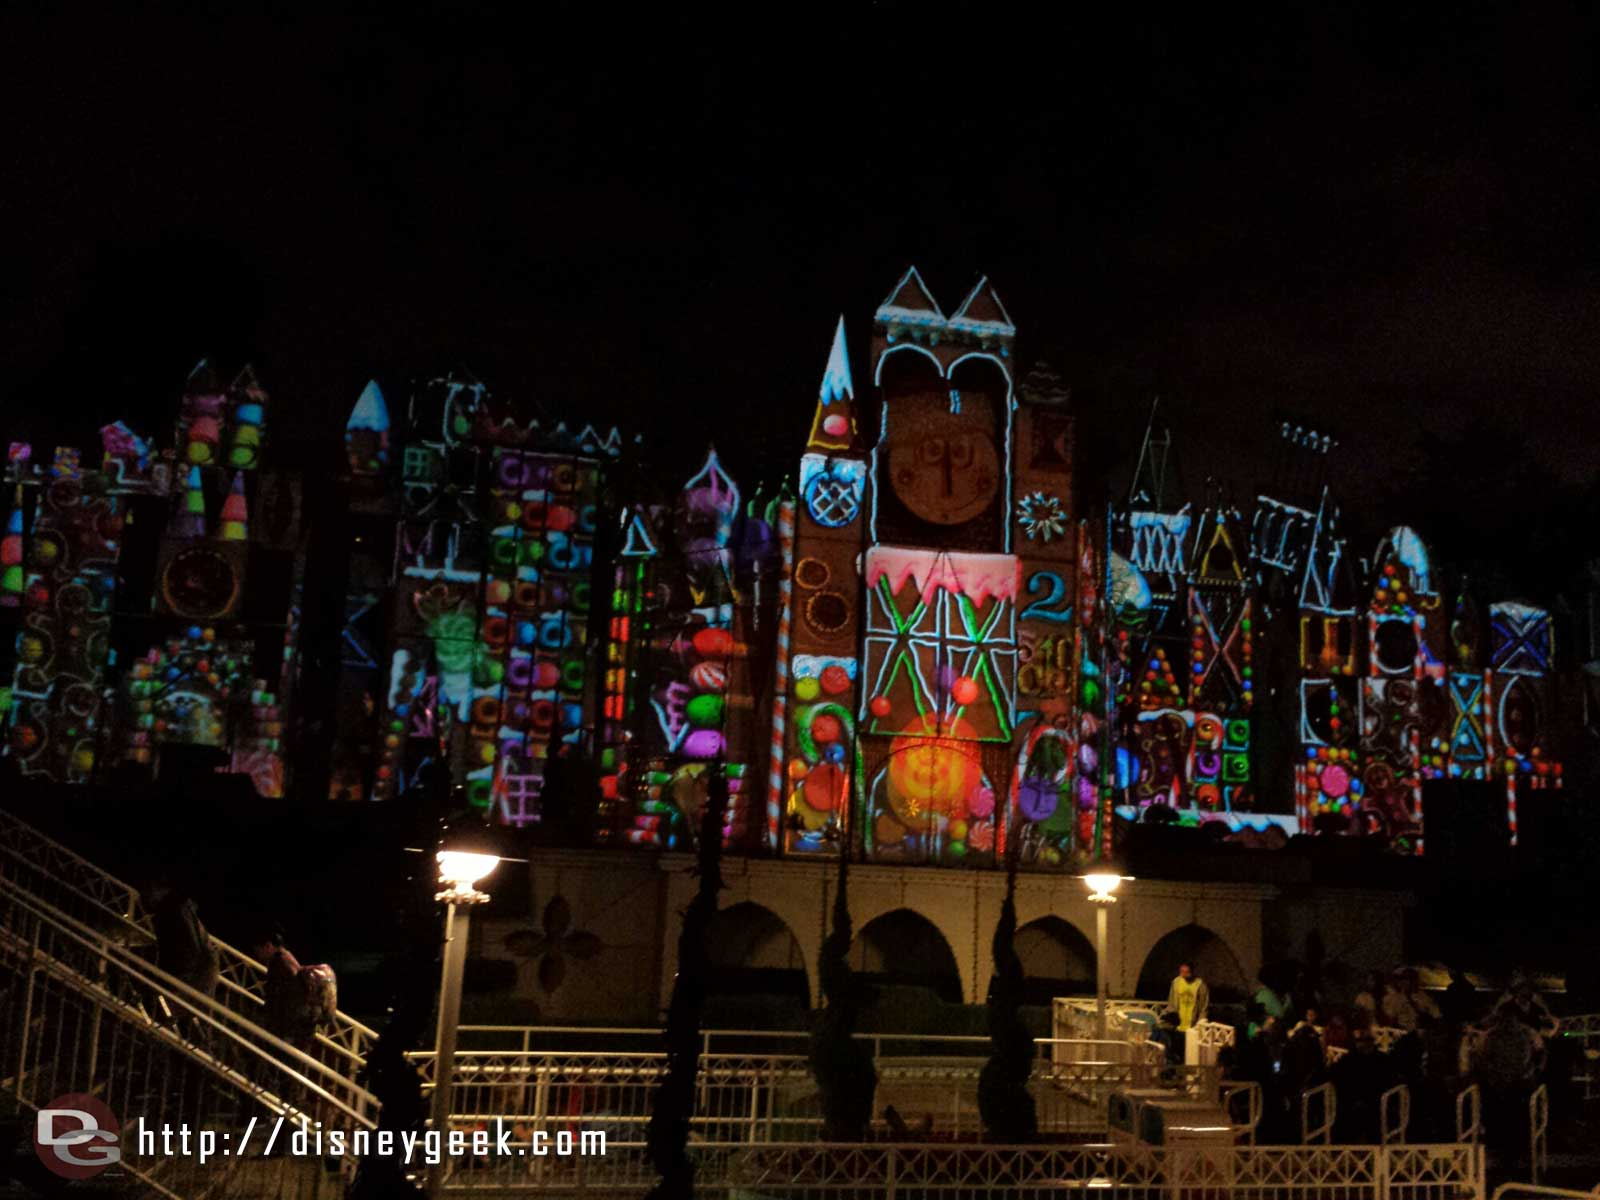 Small World Holiday projections, gingerbread #Disneyland